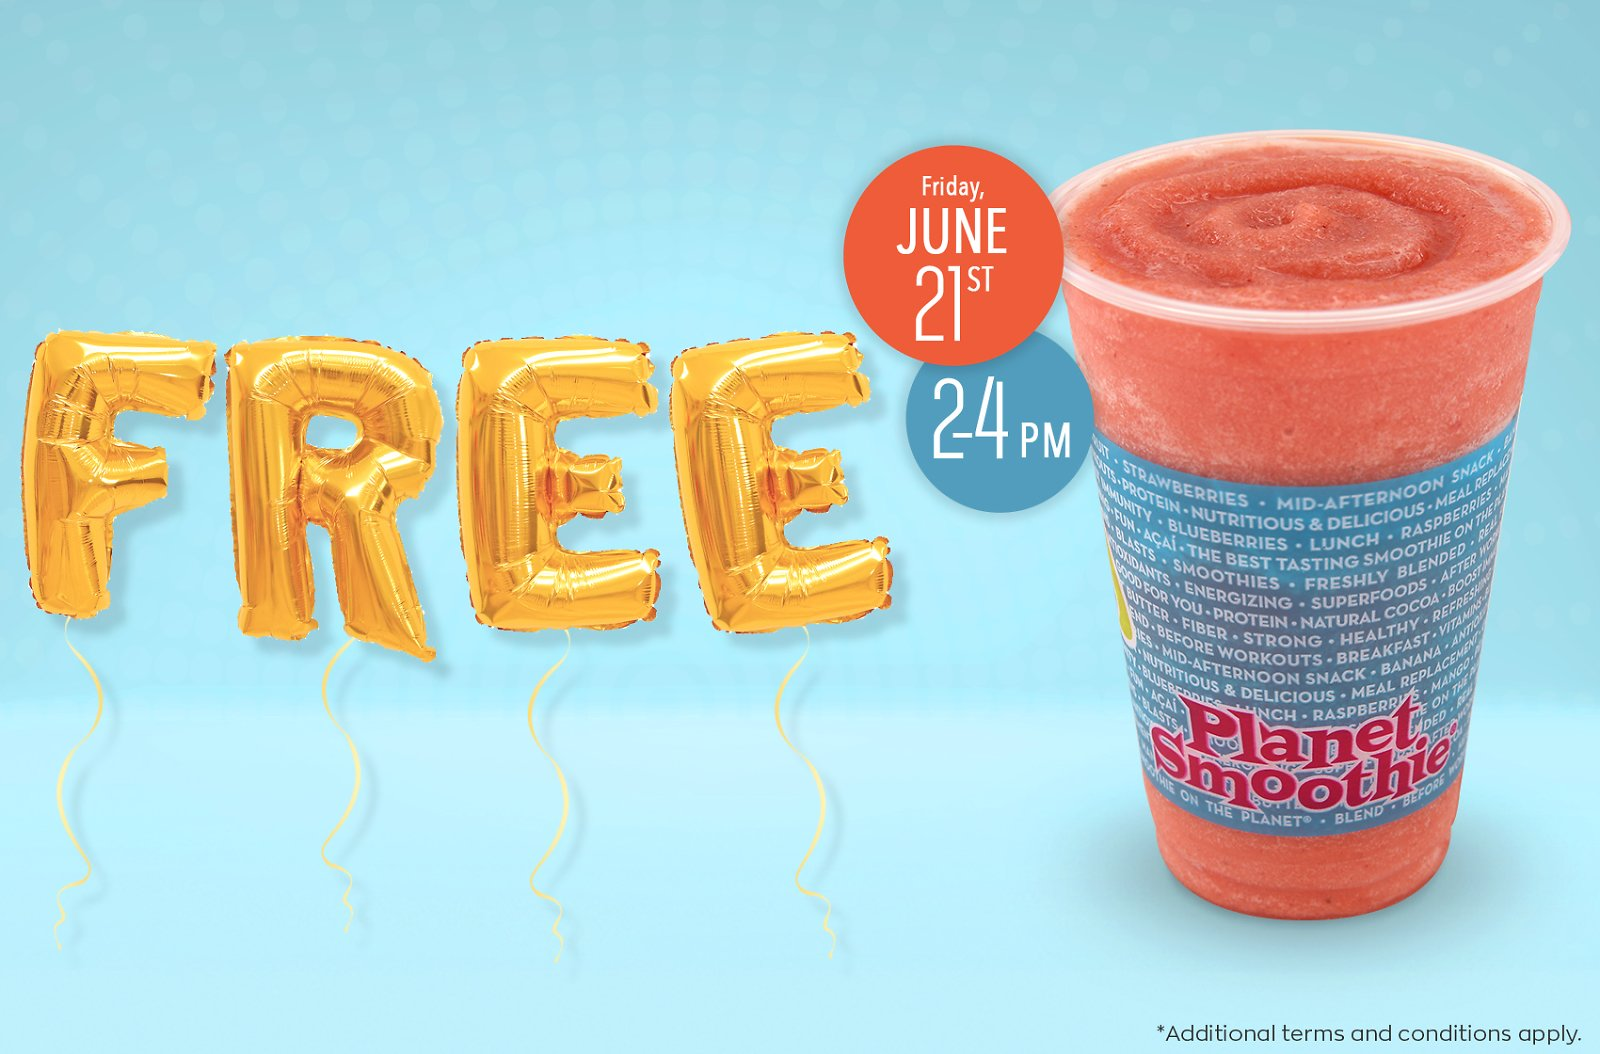 National Smoothie Day | Planet Smoothie